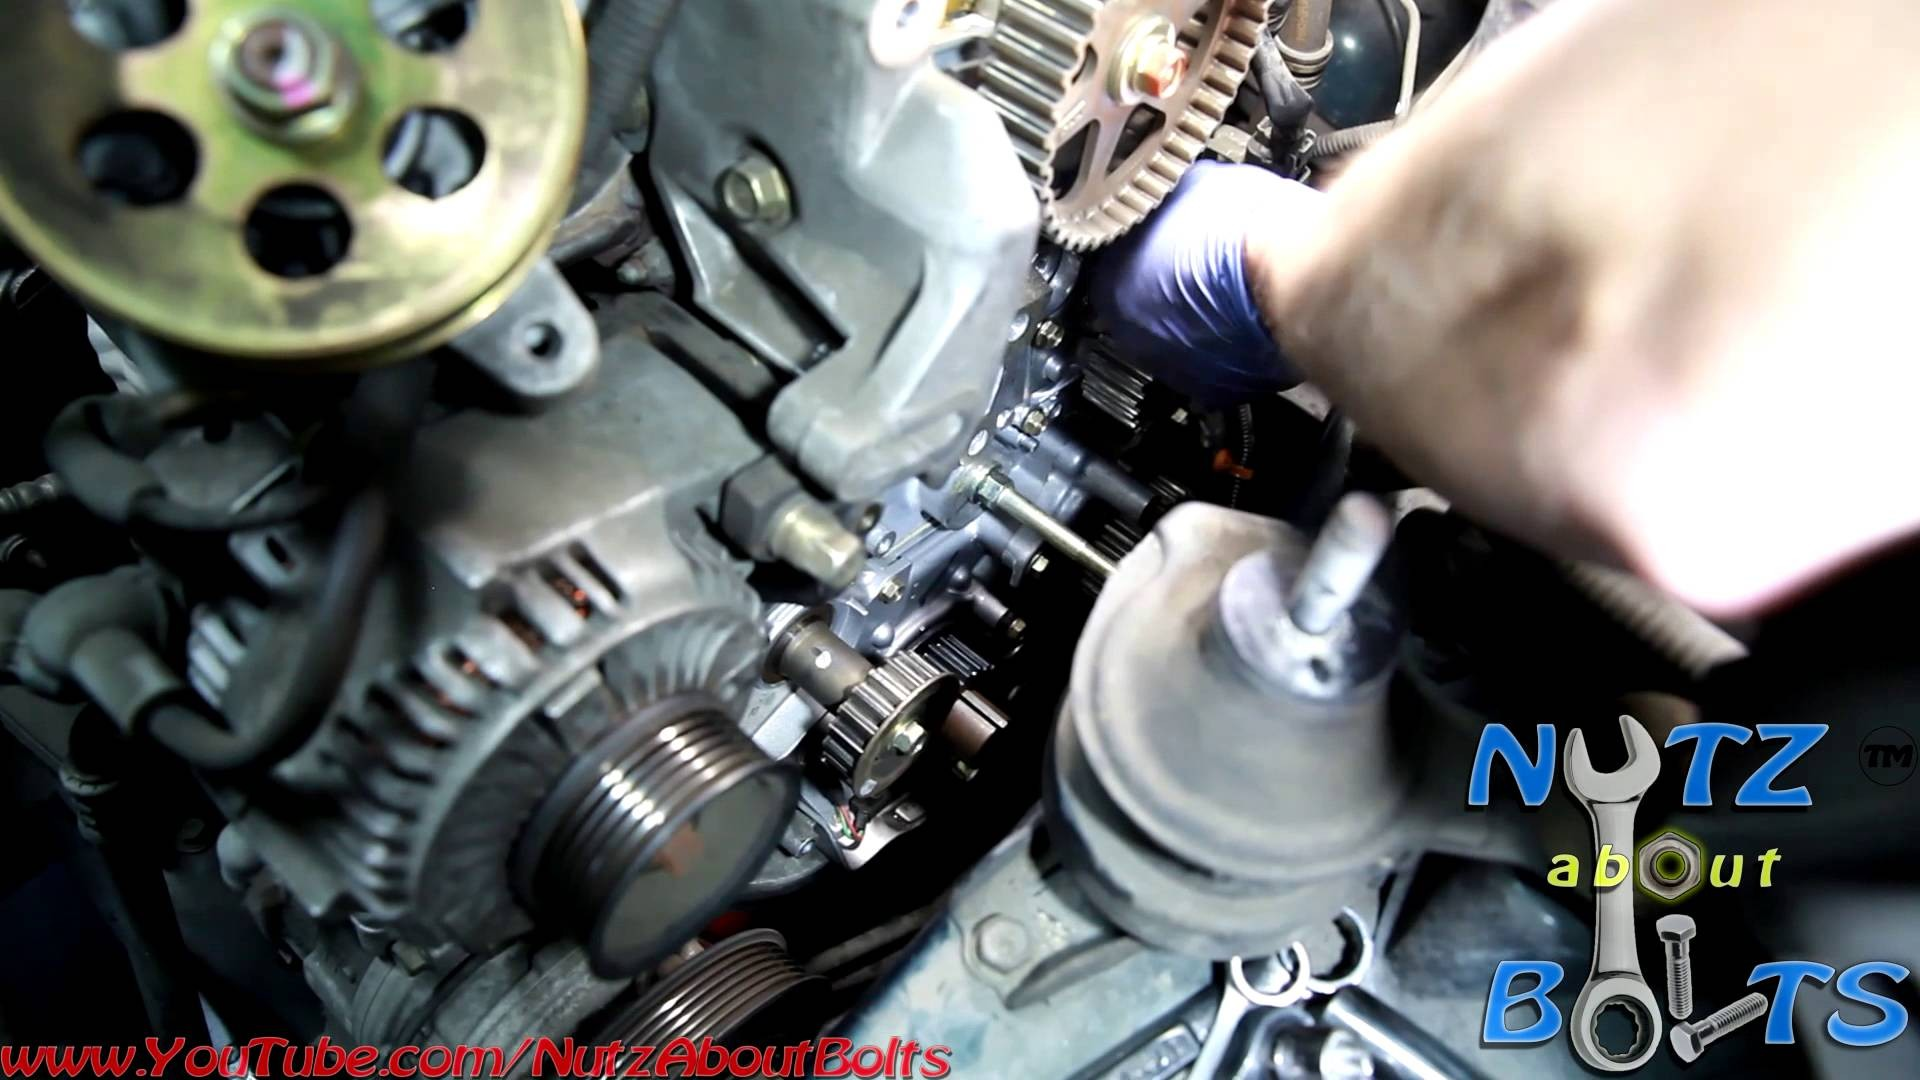 1990 Honda Accord Engine Diagram Cr V Fuse Box Besides Civic 1998 2002 Timing Belt Replacement With Water Pump Of